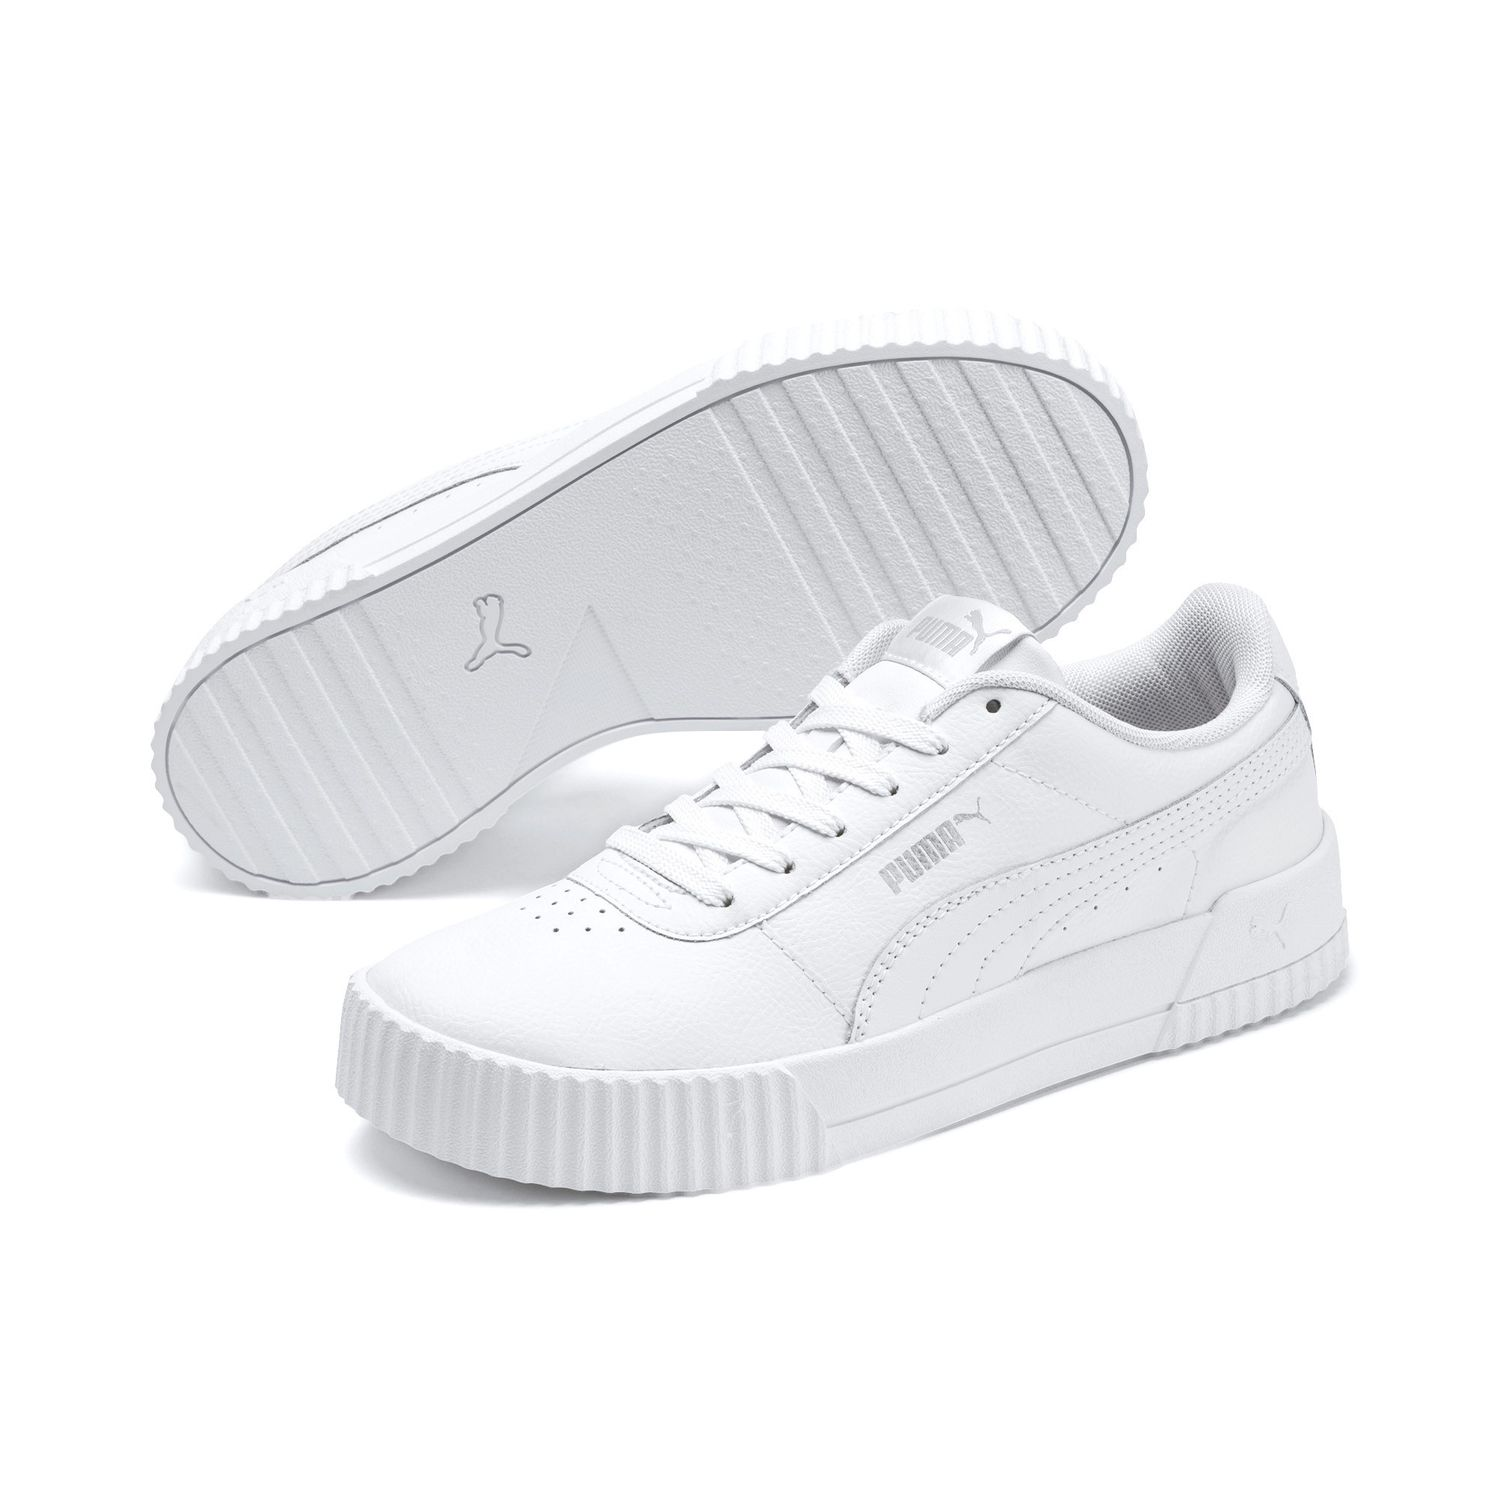 Details about Puma Cabasag L Ladies Streetstyle Trainers Clubwear 370325  Puma White